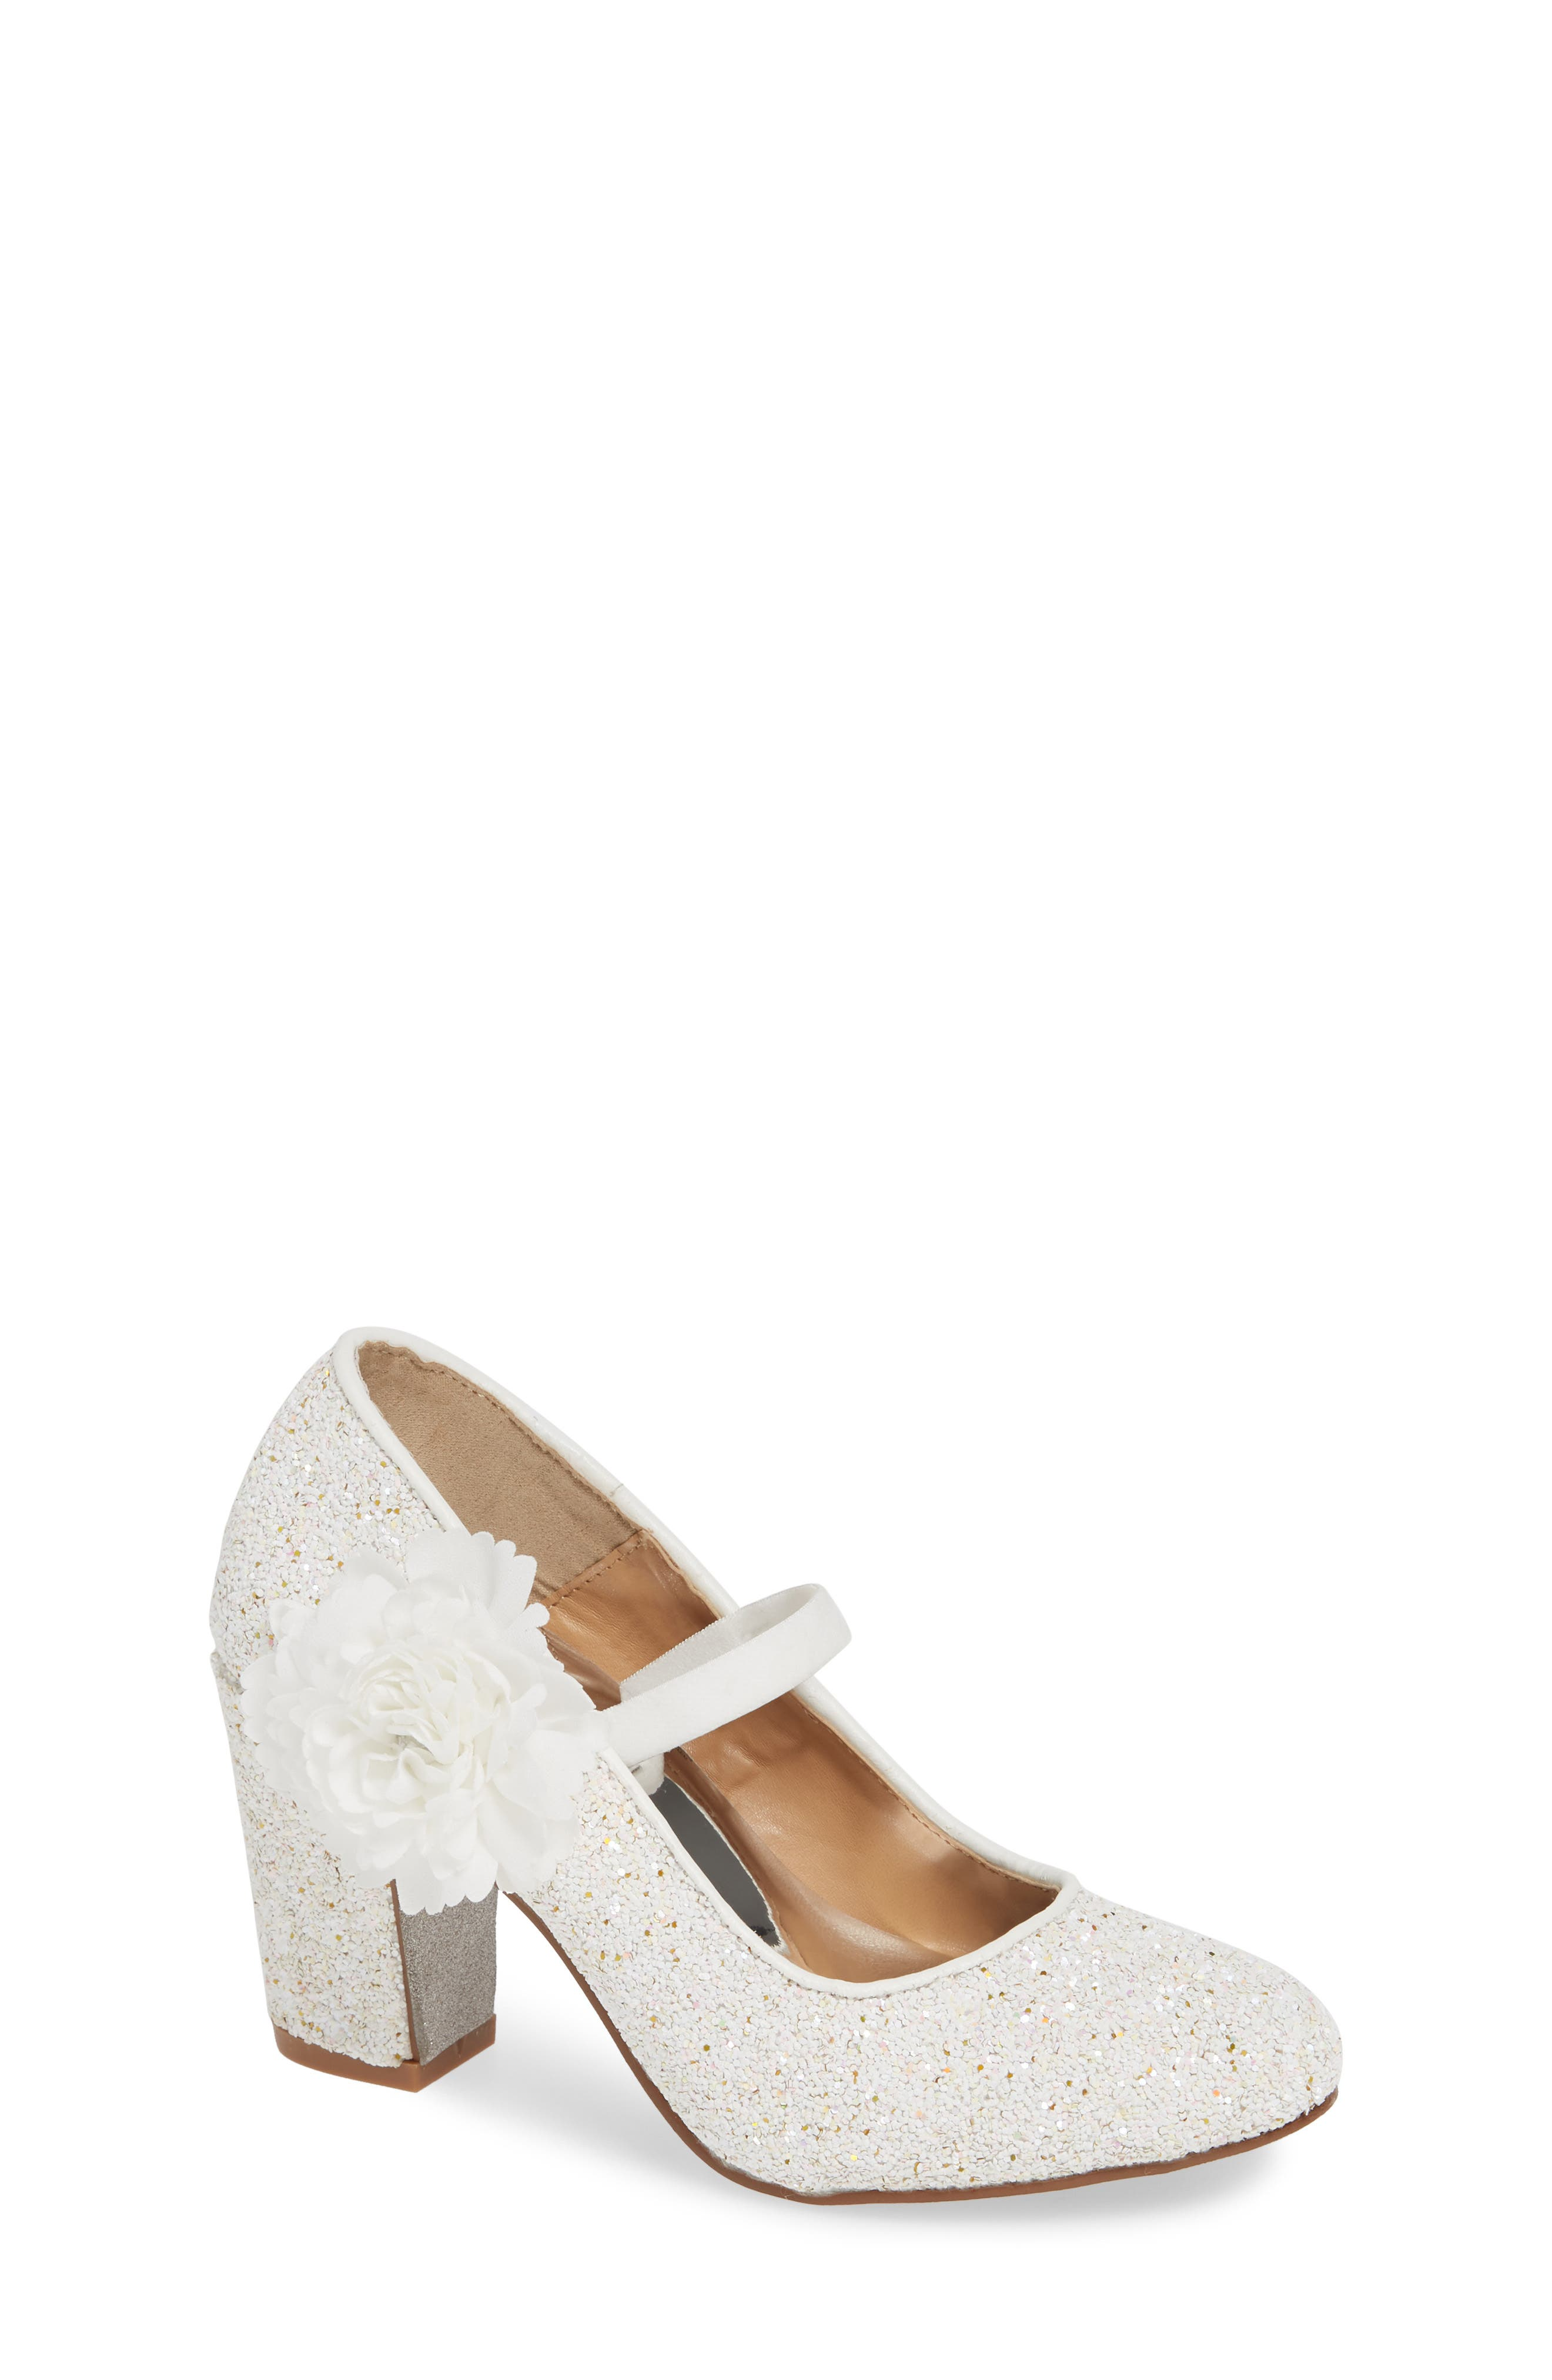 f2e779531c2 Badgley Mischka Collection Big Kid Shoes (Sizes 3.5-7)